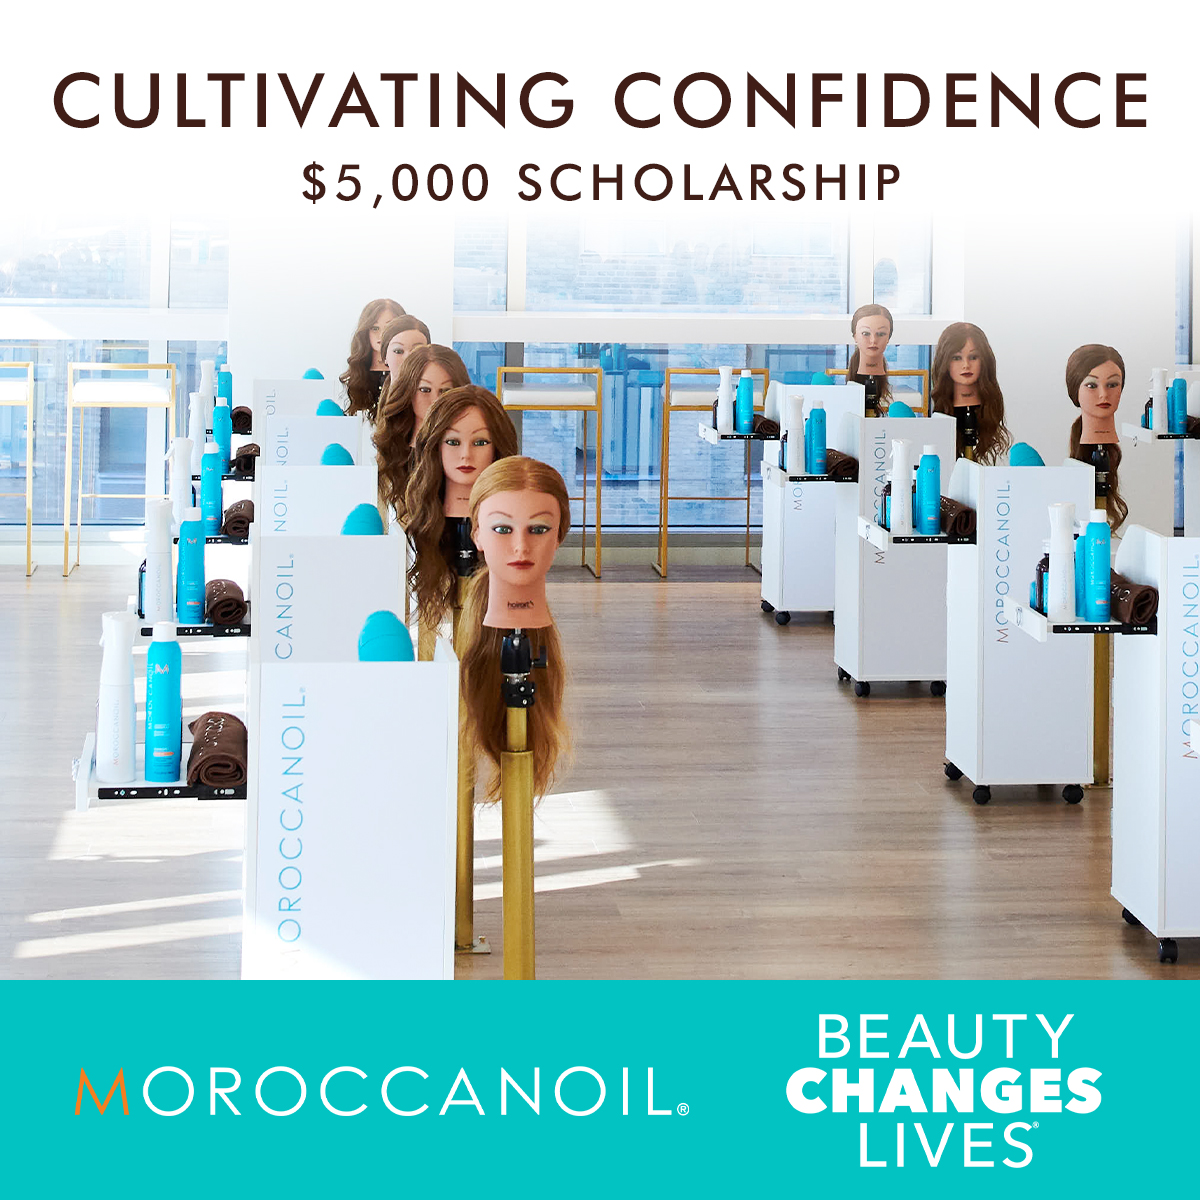 Cultivating Confidence scholarship